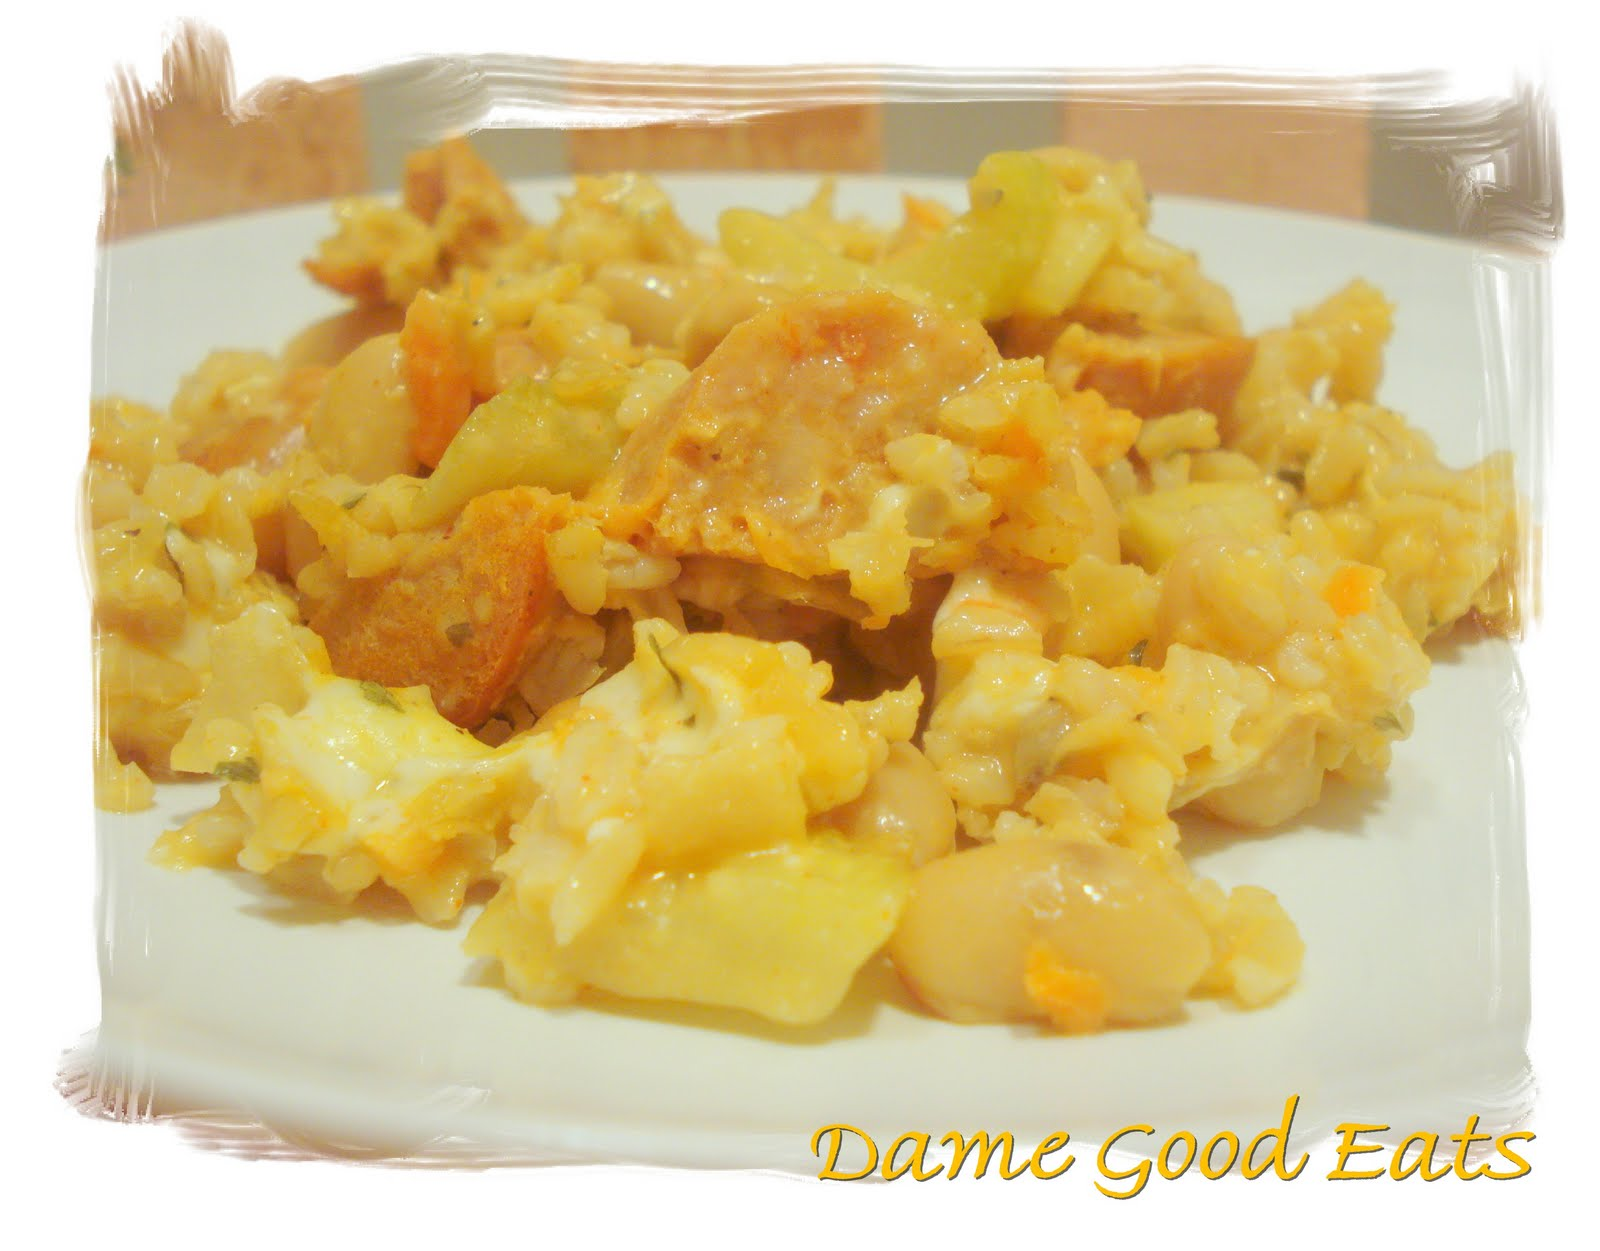 Dame Good Eats: Buffalo Chicken-Sausage Casserole